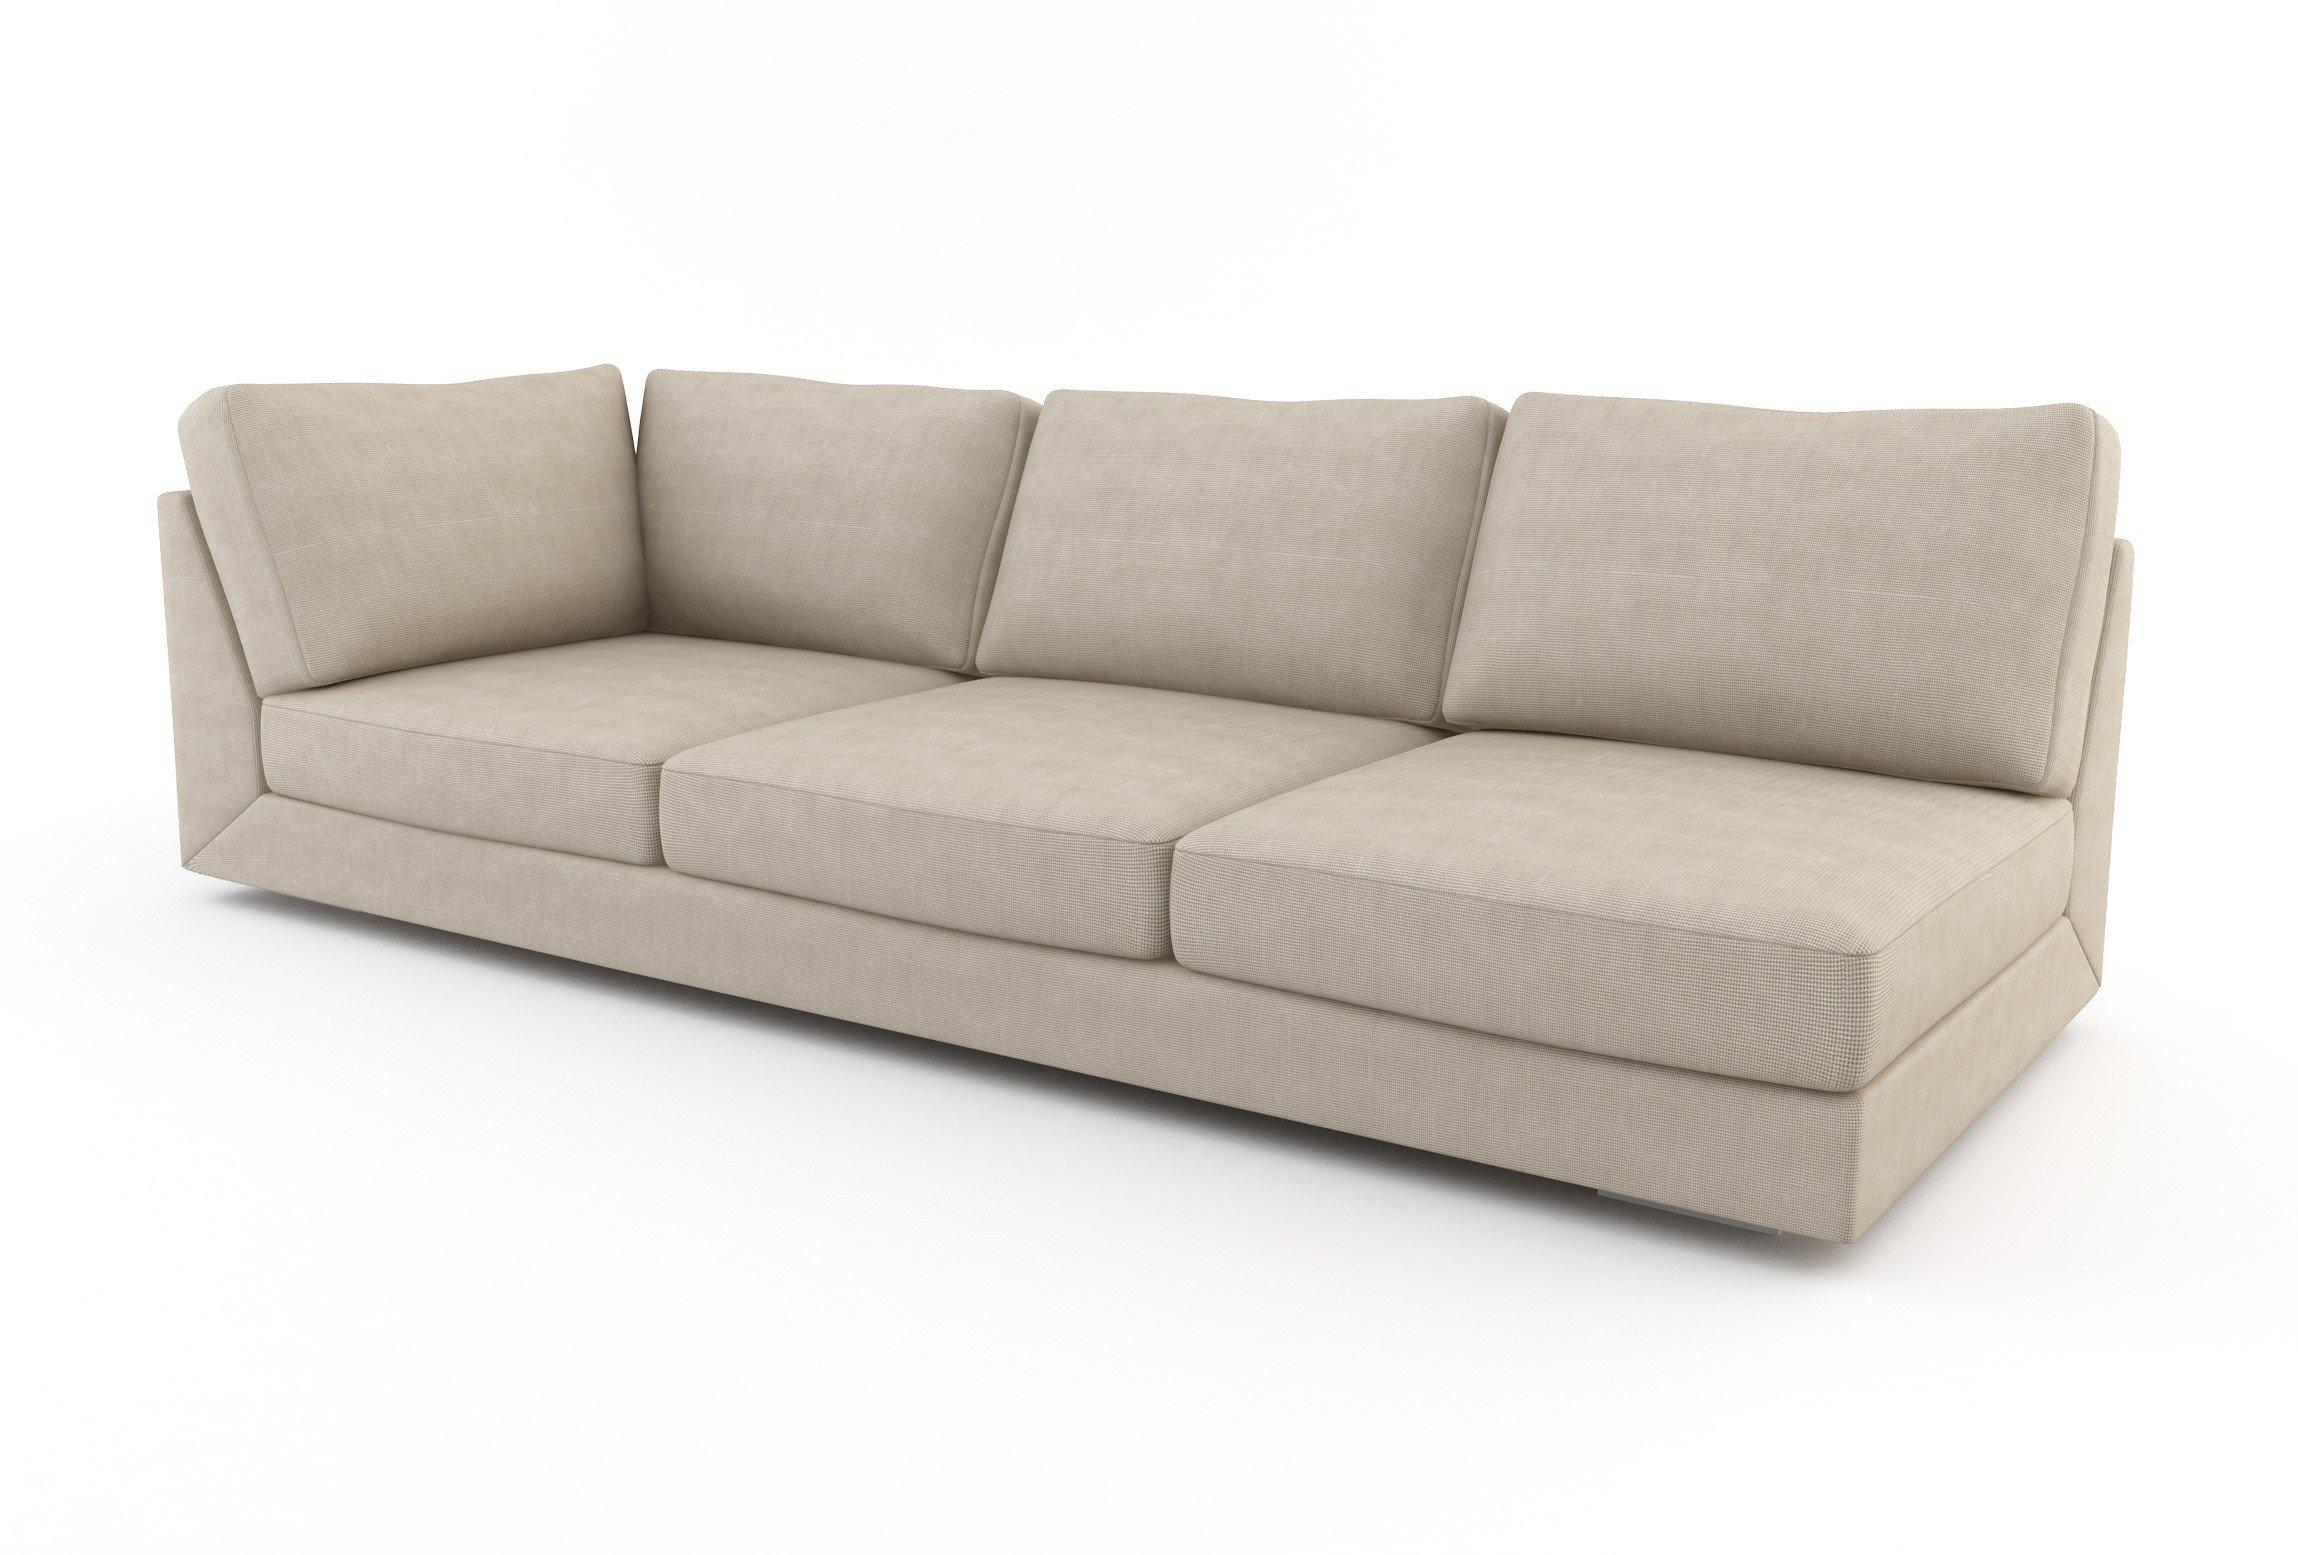 Sectional Wedge Sofa Angle Wedge Sectional Sofa